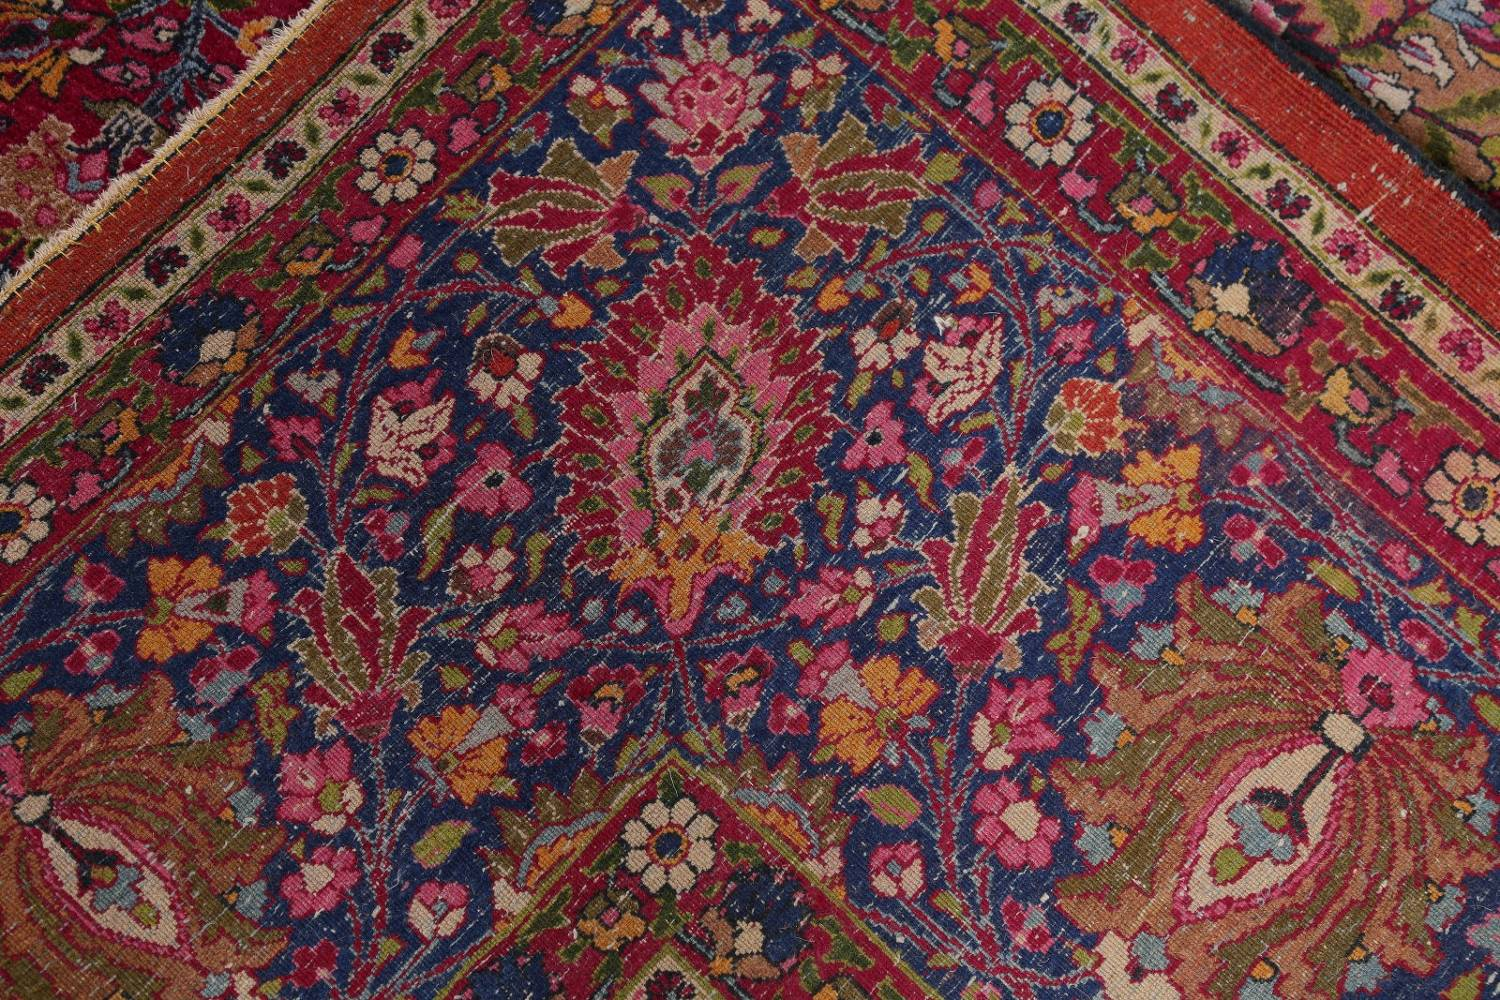 All-Over Floral 11x16 Mashad Persian Area Rug image 29